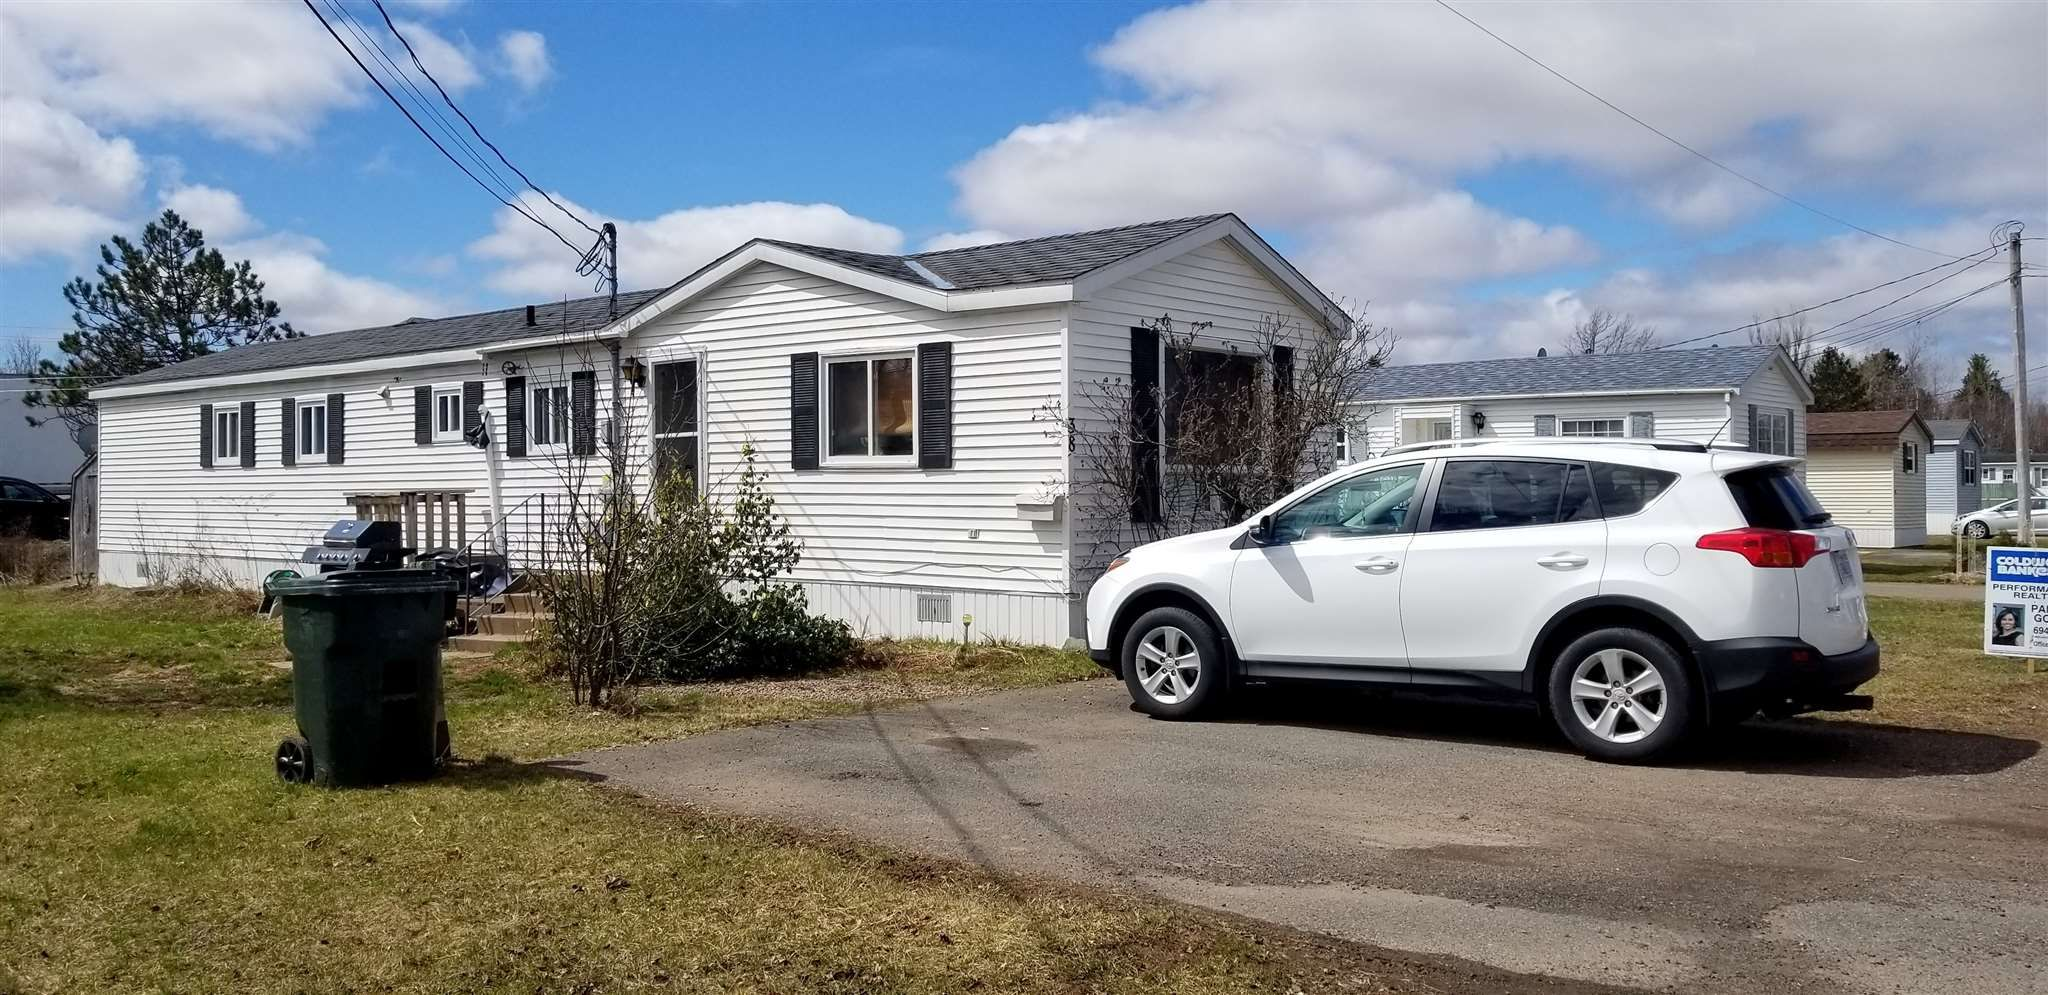 Main Photo: 38 Kent Drive in Amherst: 101-Amherst,Brookdale,Warren Residential for sale (Northern Region)  : MLS®# 202107633